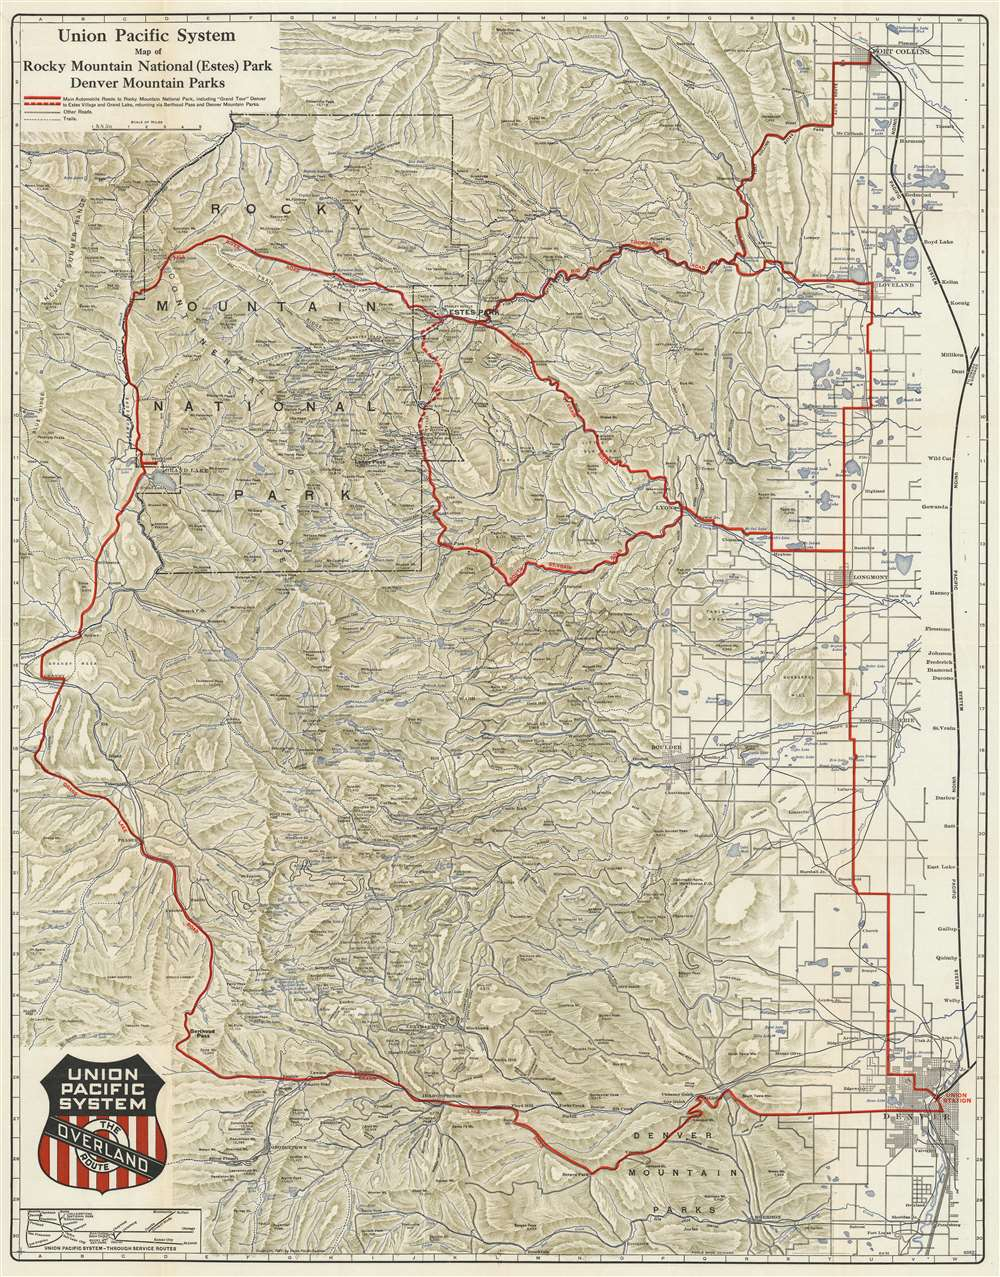 Union Pacific System Map of Rocky Mountain National (Estes ...